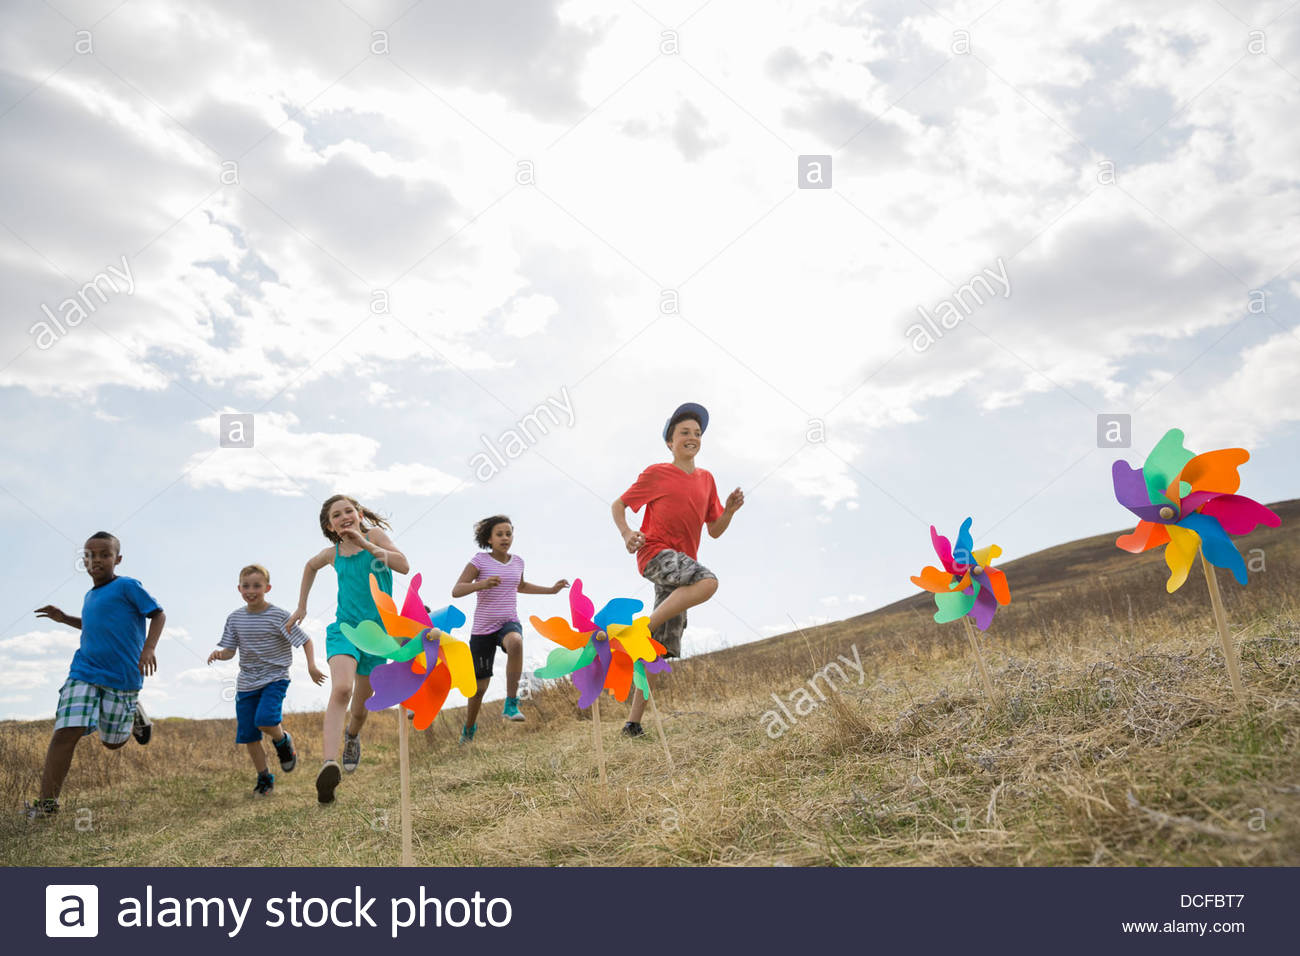 Children running through field - Stock Image